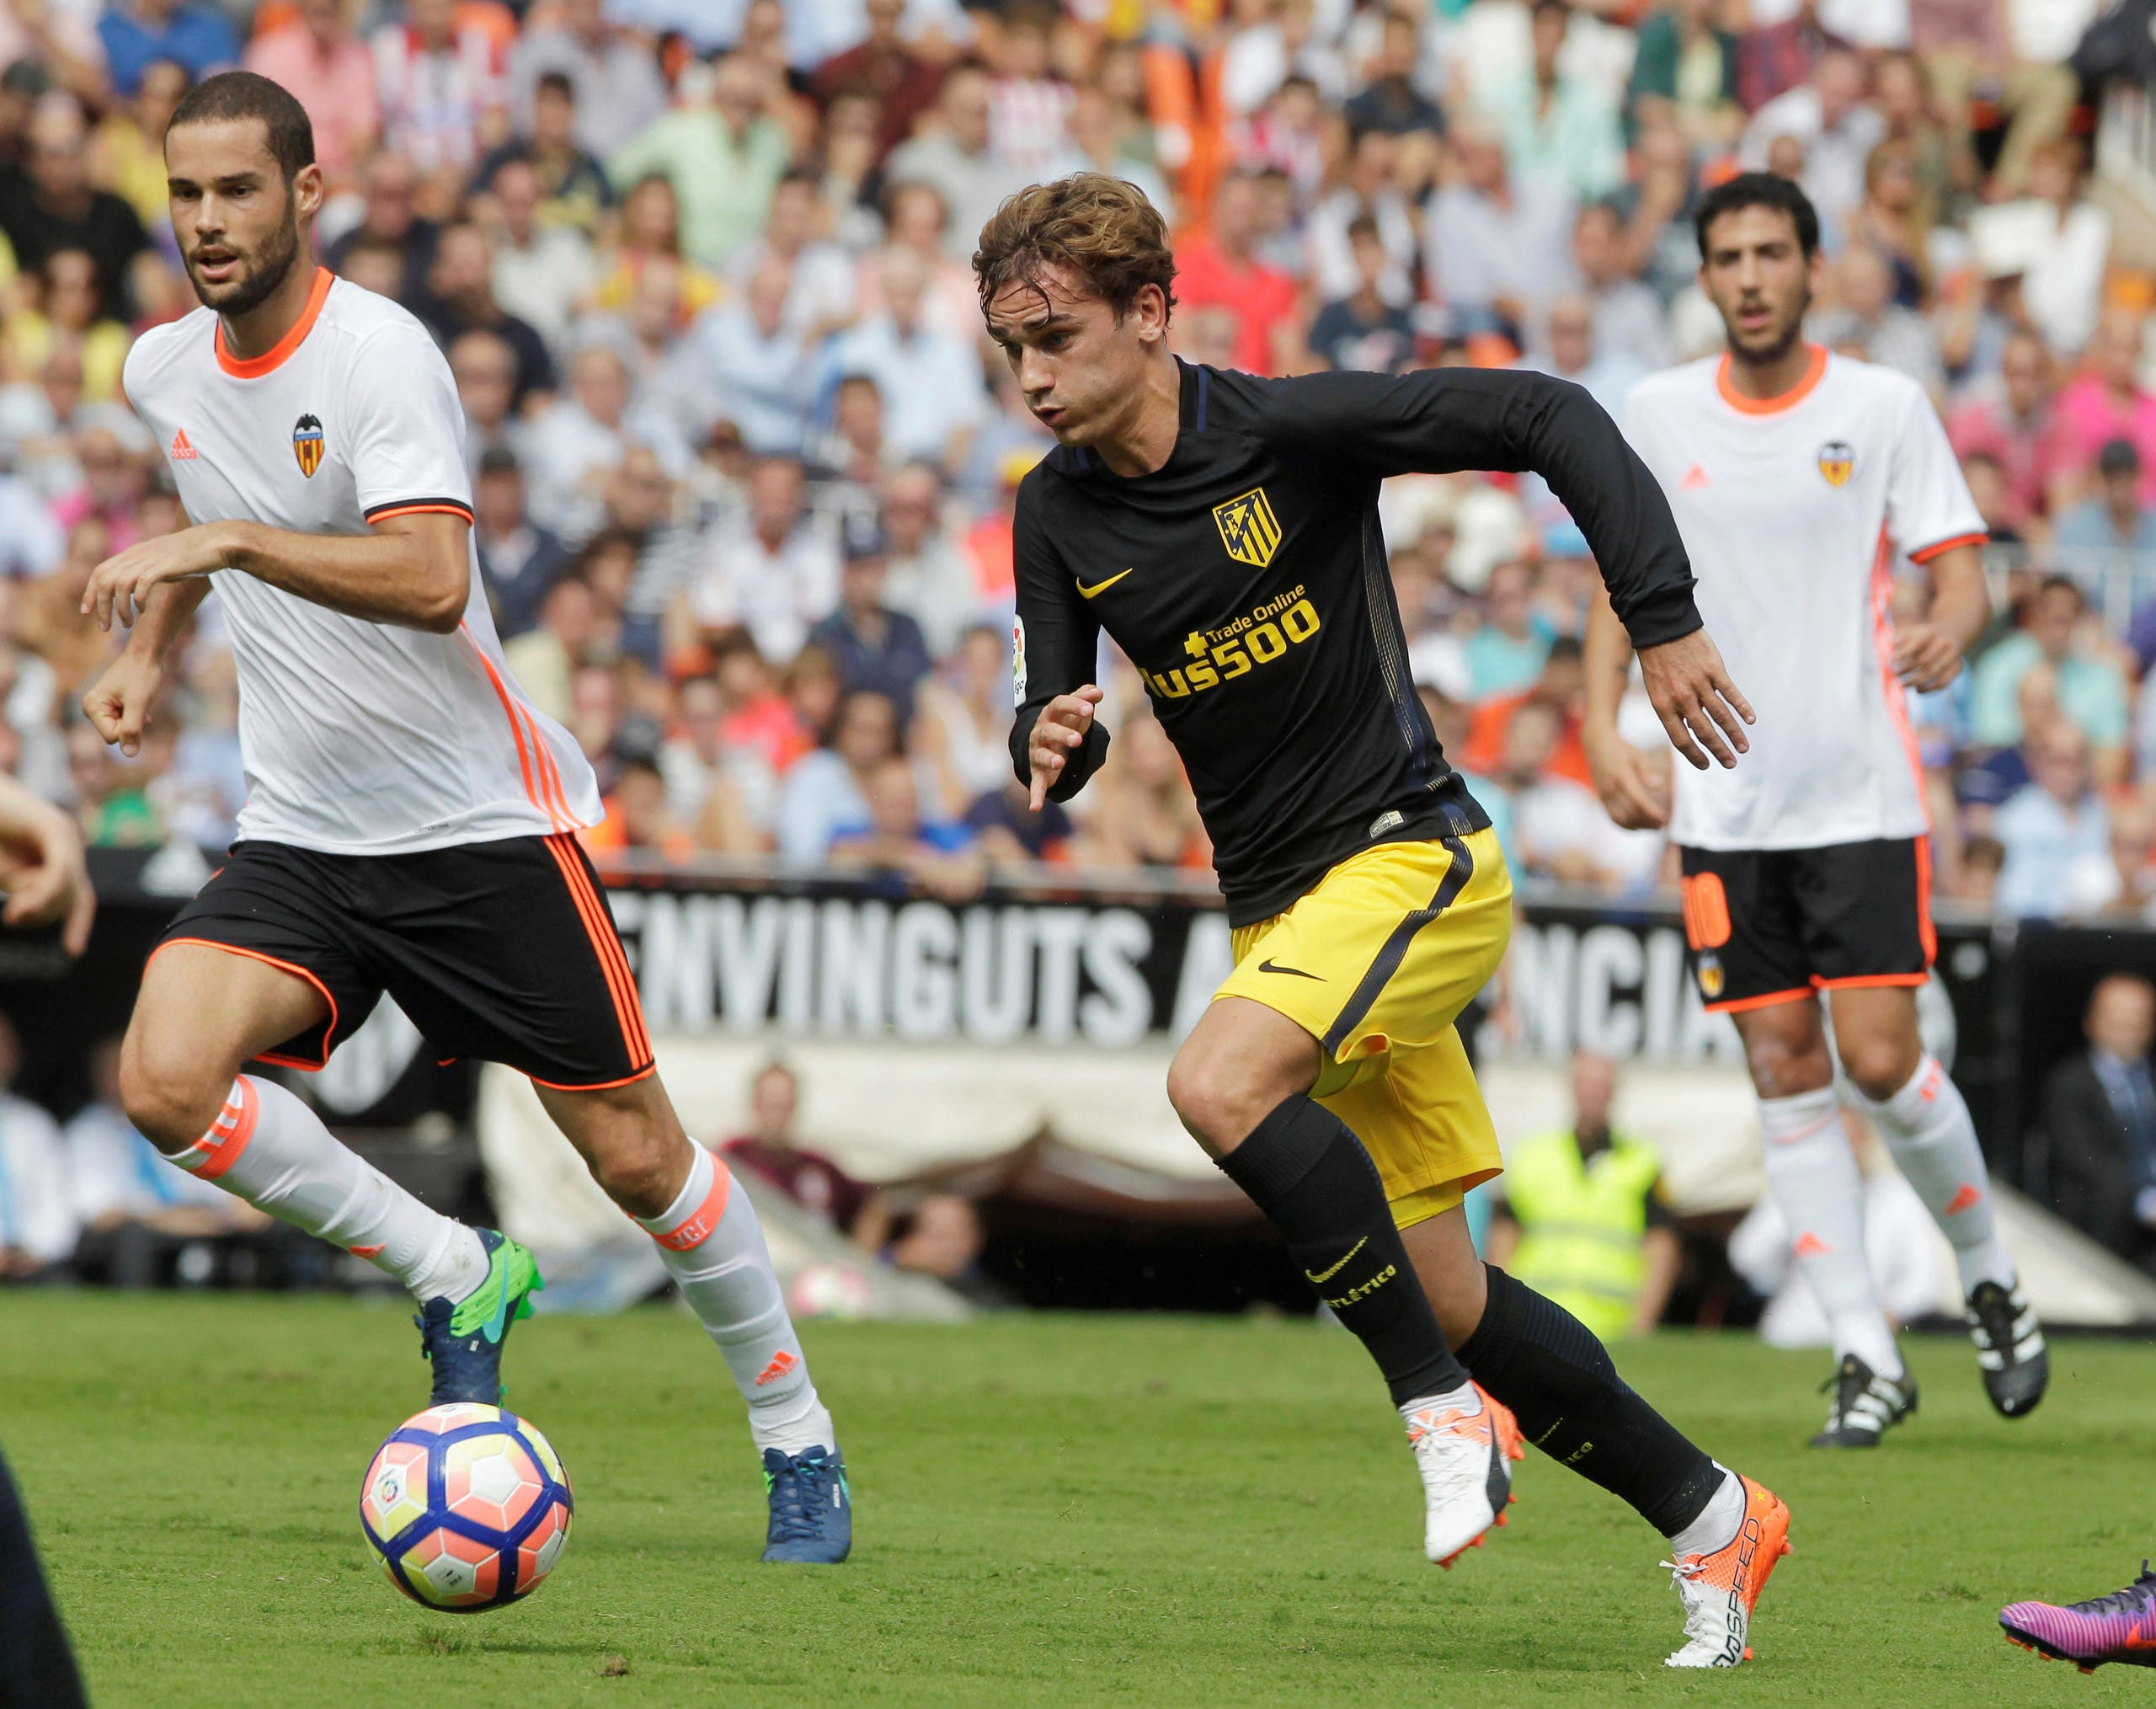 Atletico Madrid's Antoine Griezmann (C) and Valencia's Mario Suarez in action. (Reuters)